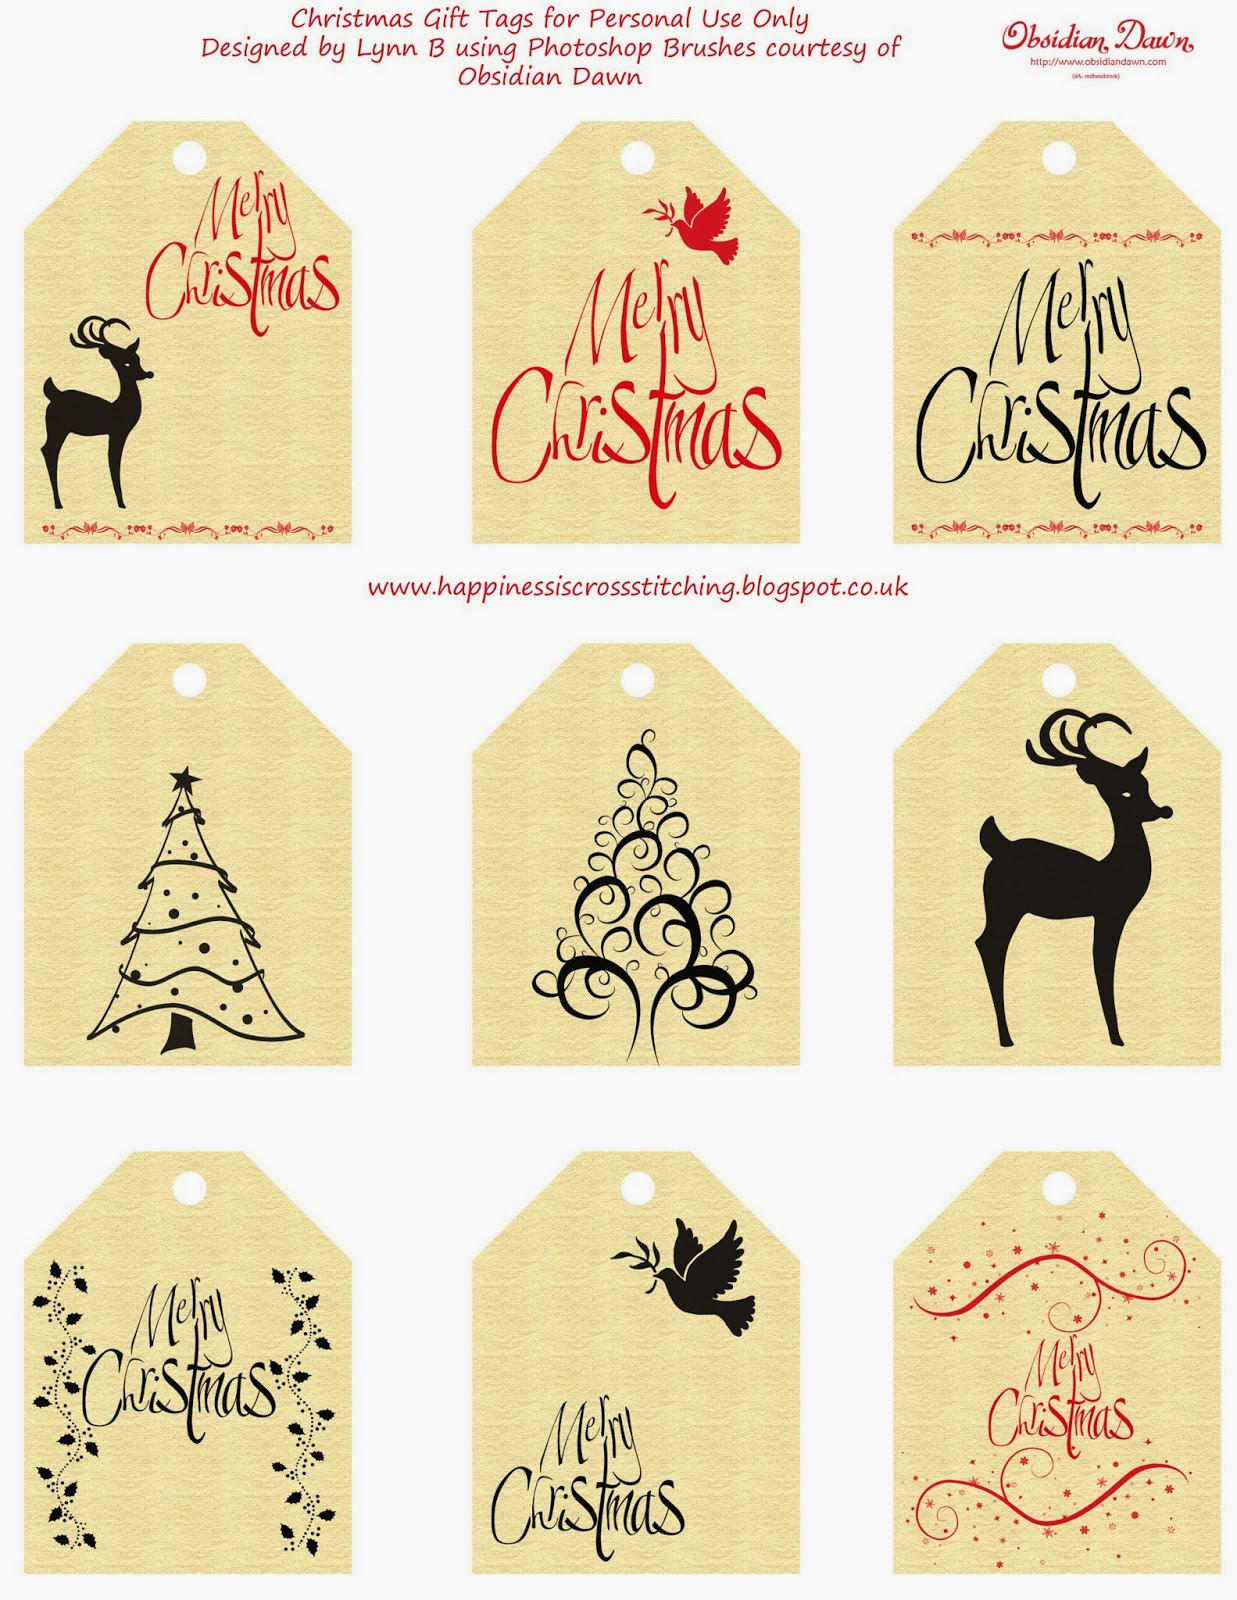 Christmas Gift Tags By Lynn B